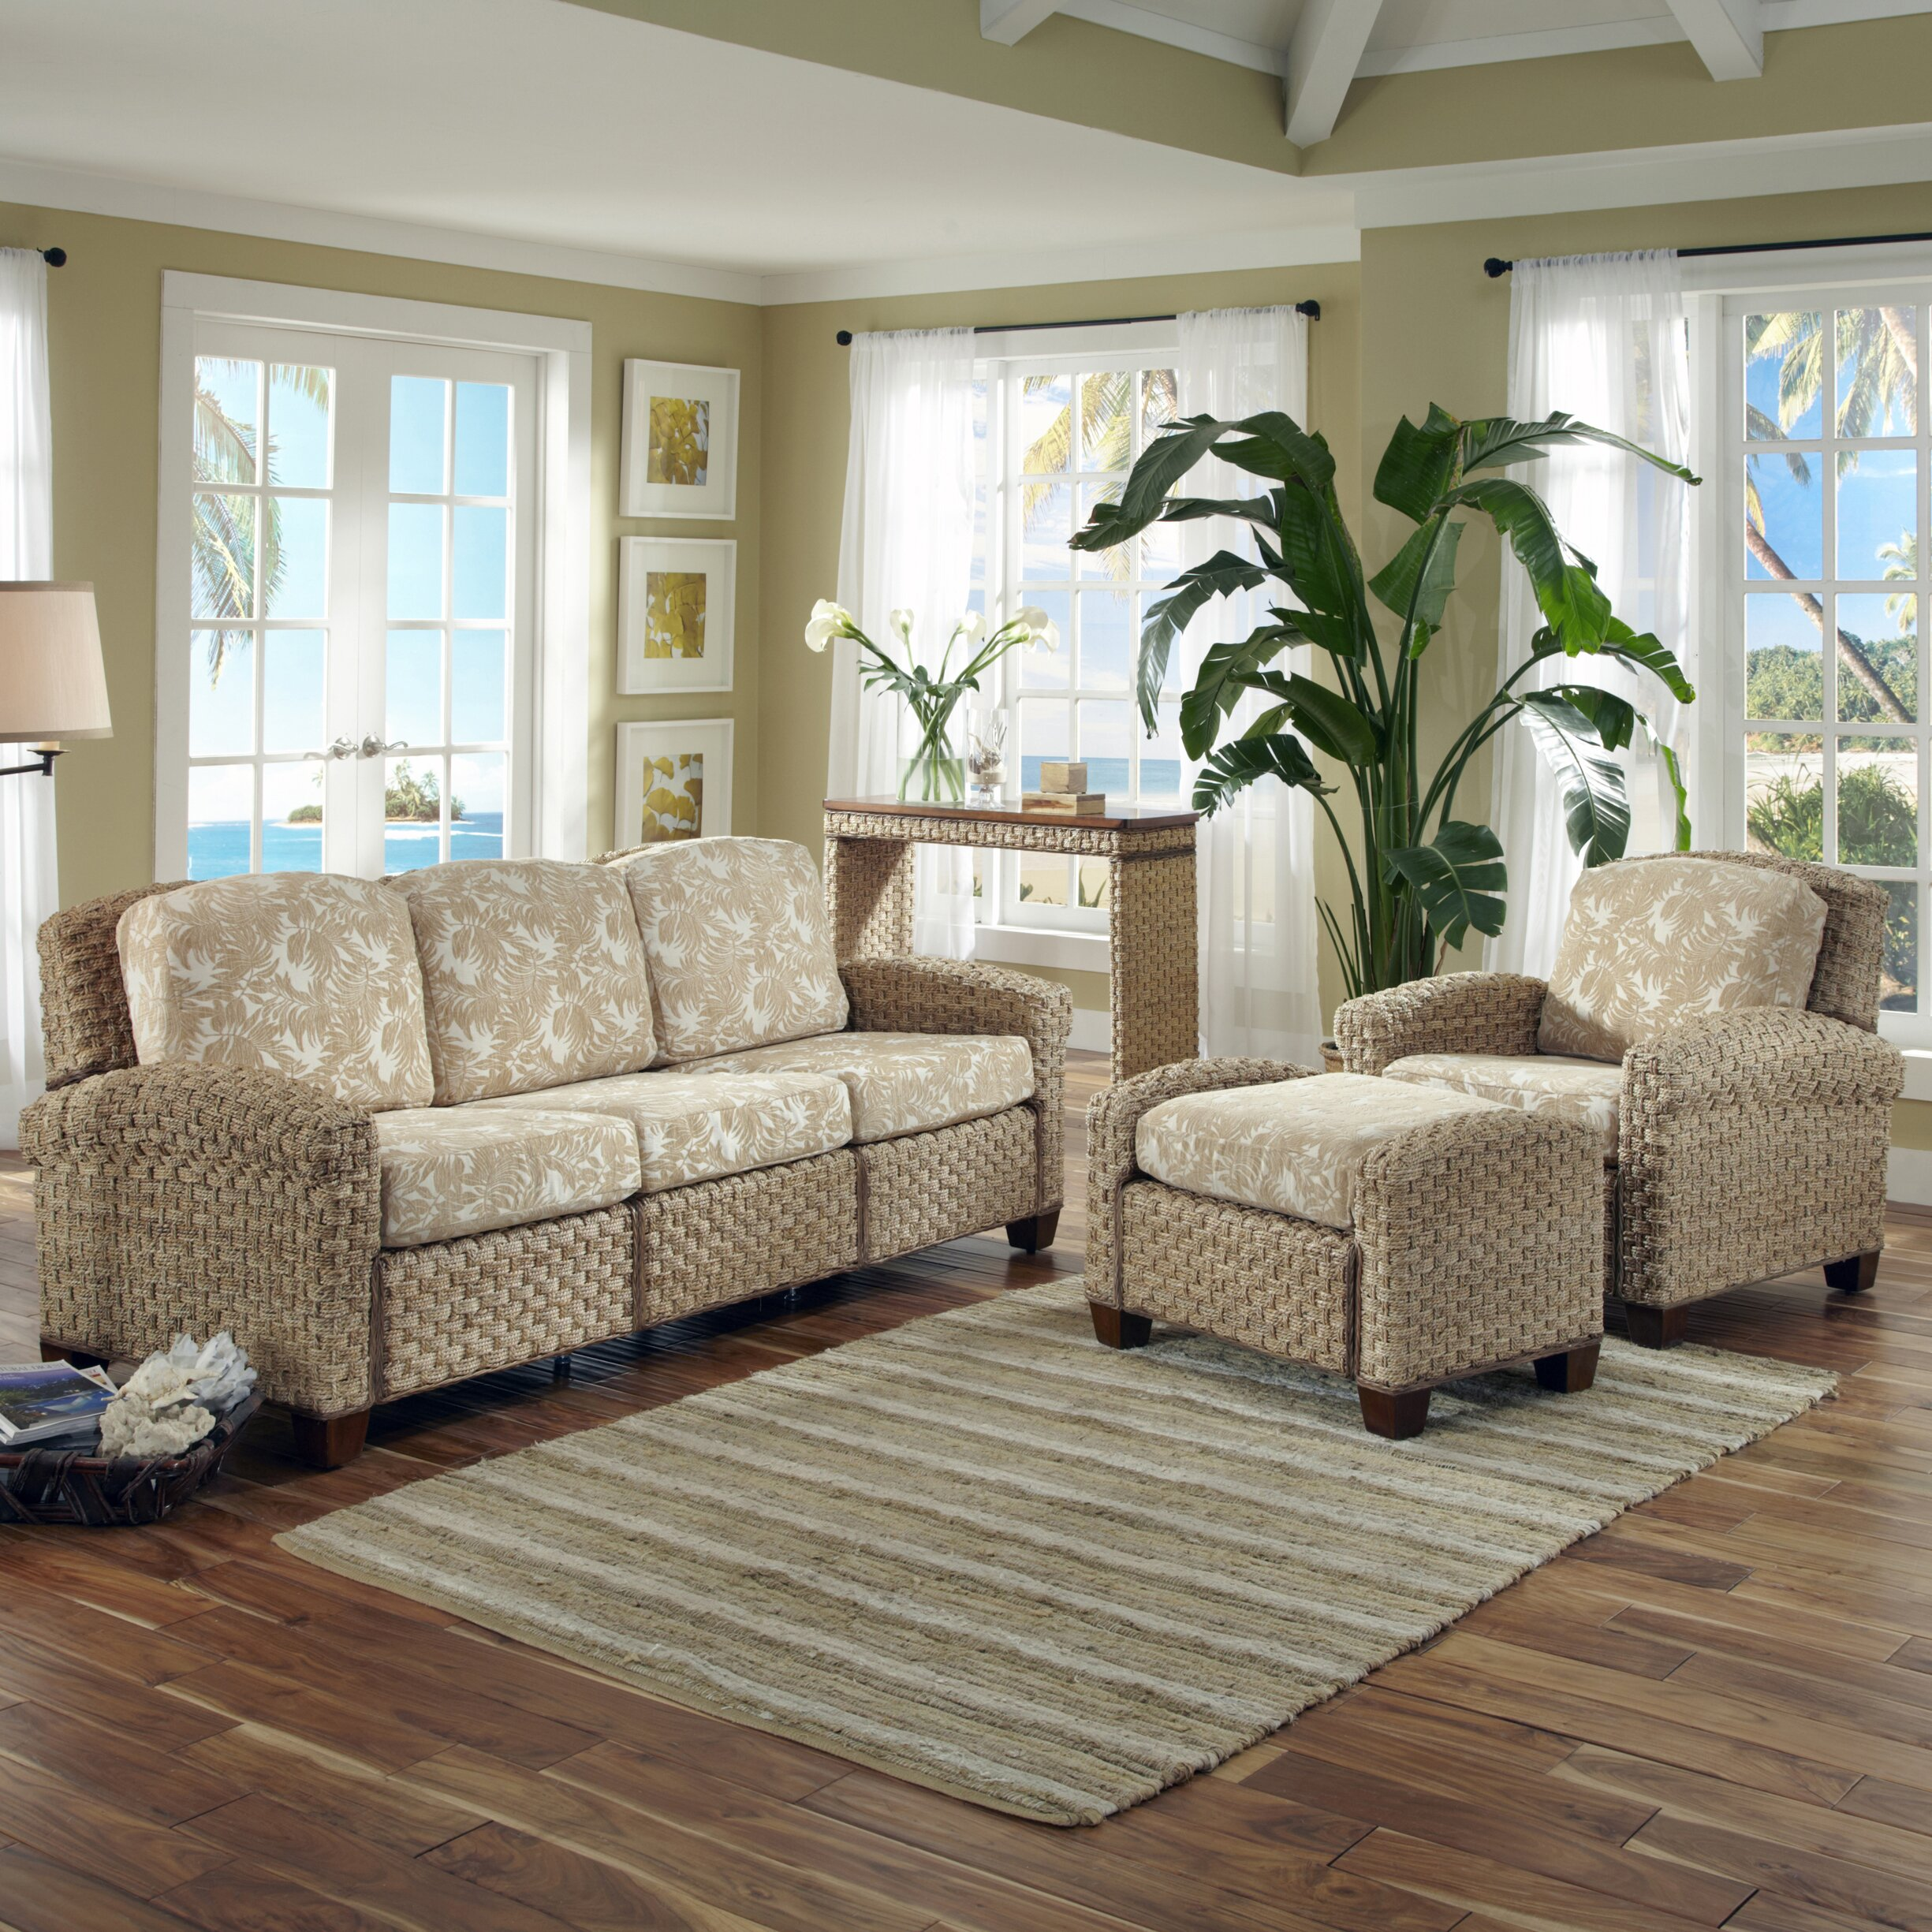 Home styles cabana banana ii 3 piece living room set wayfair for Living room 3 piece sets